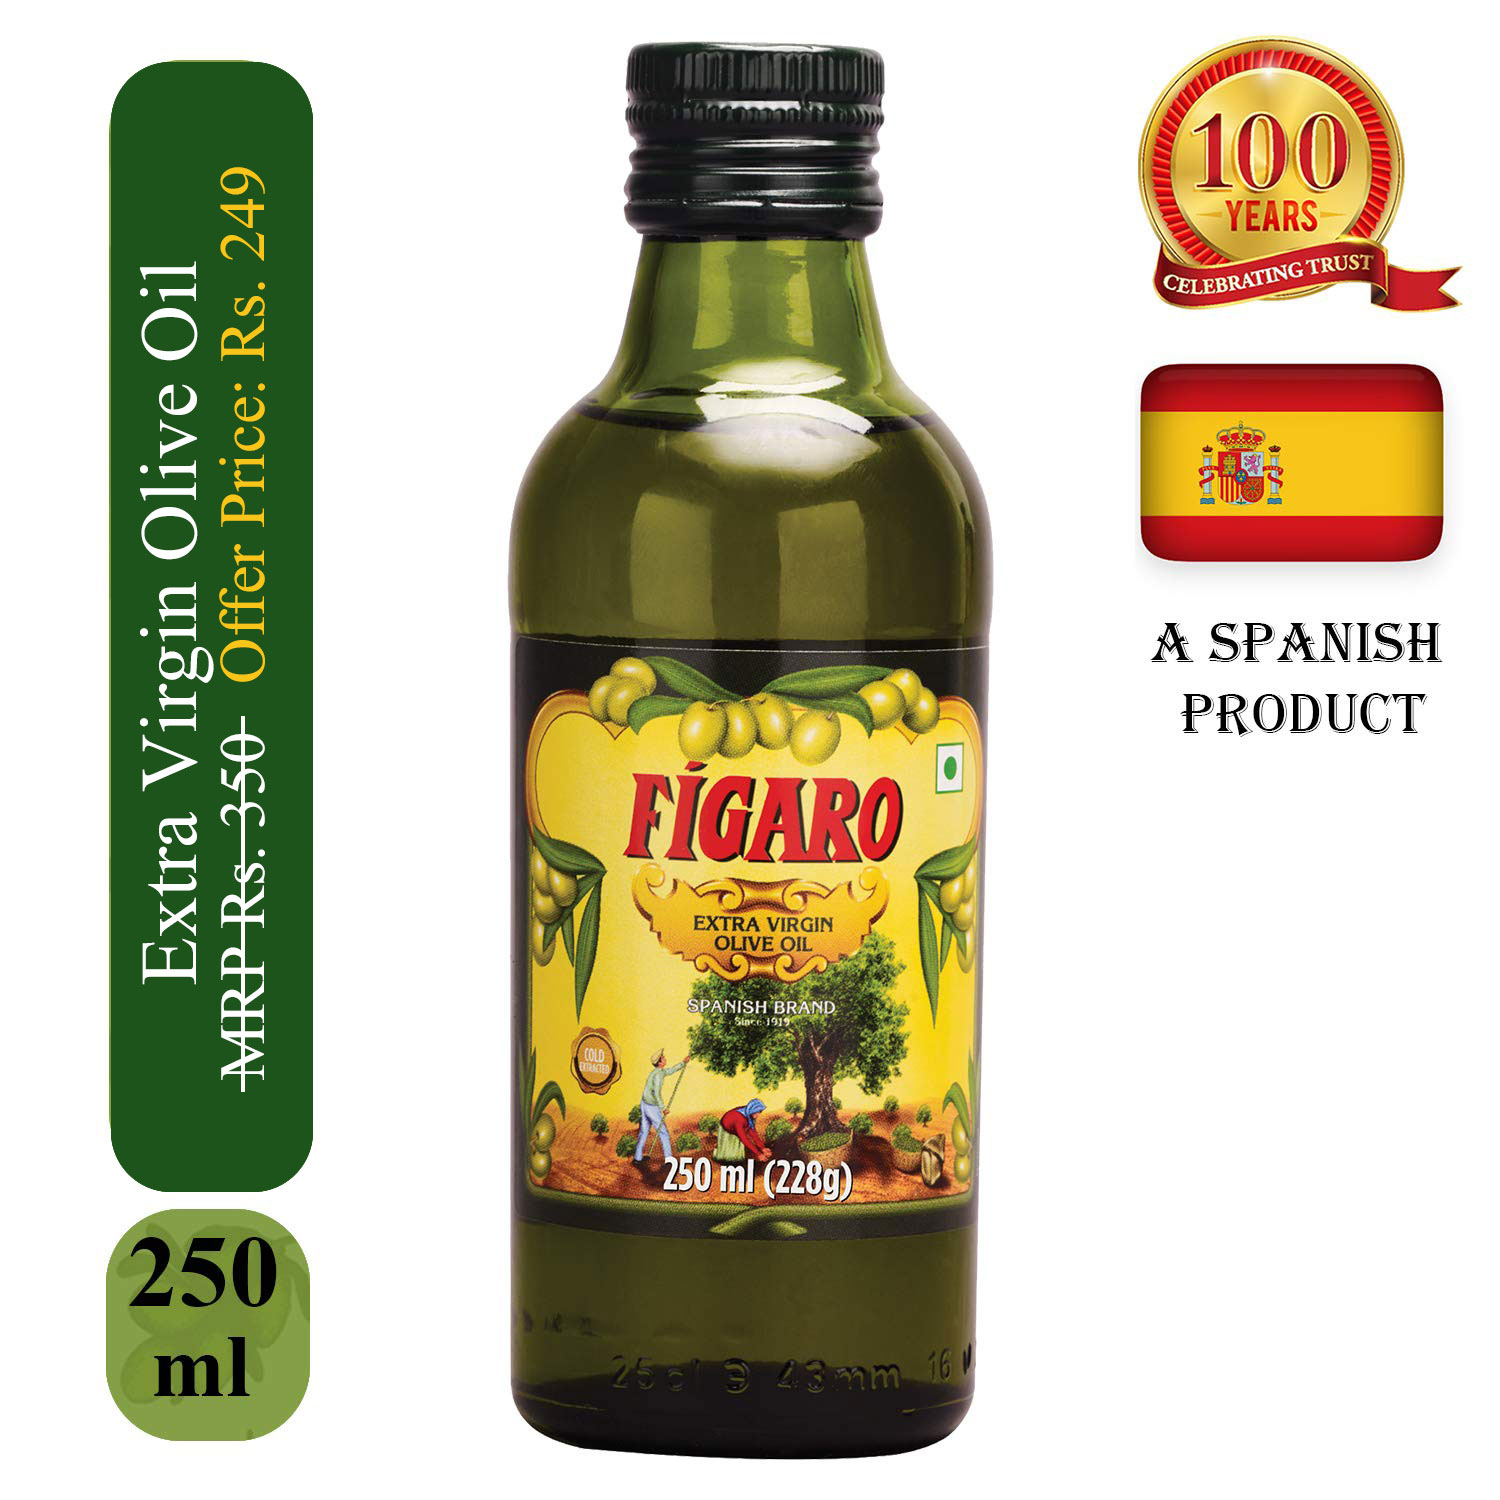 Figaro Extra Virgin Olive Oil